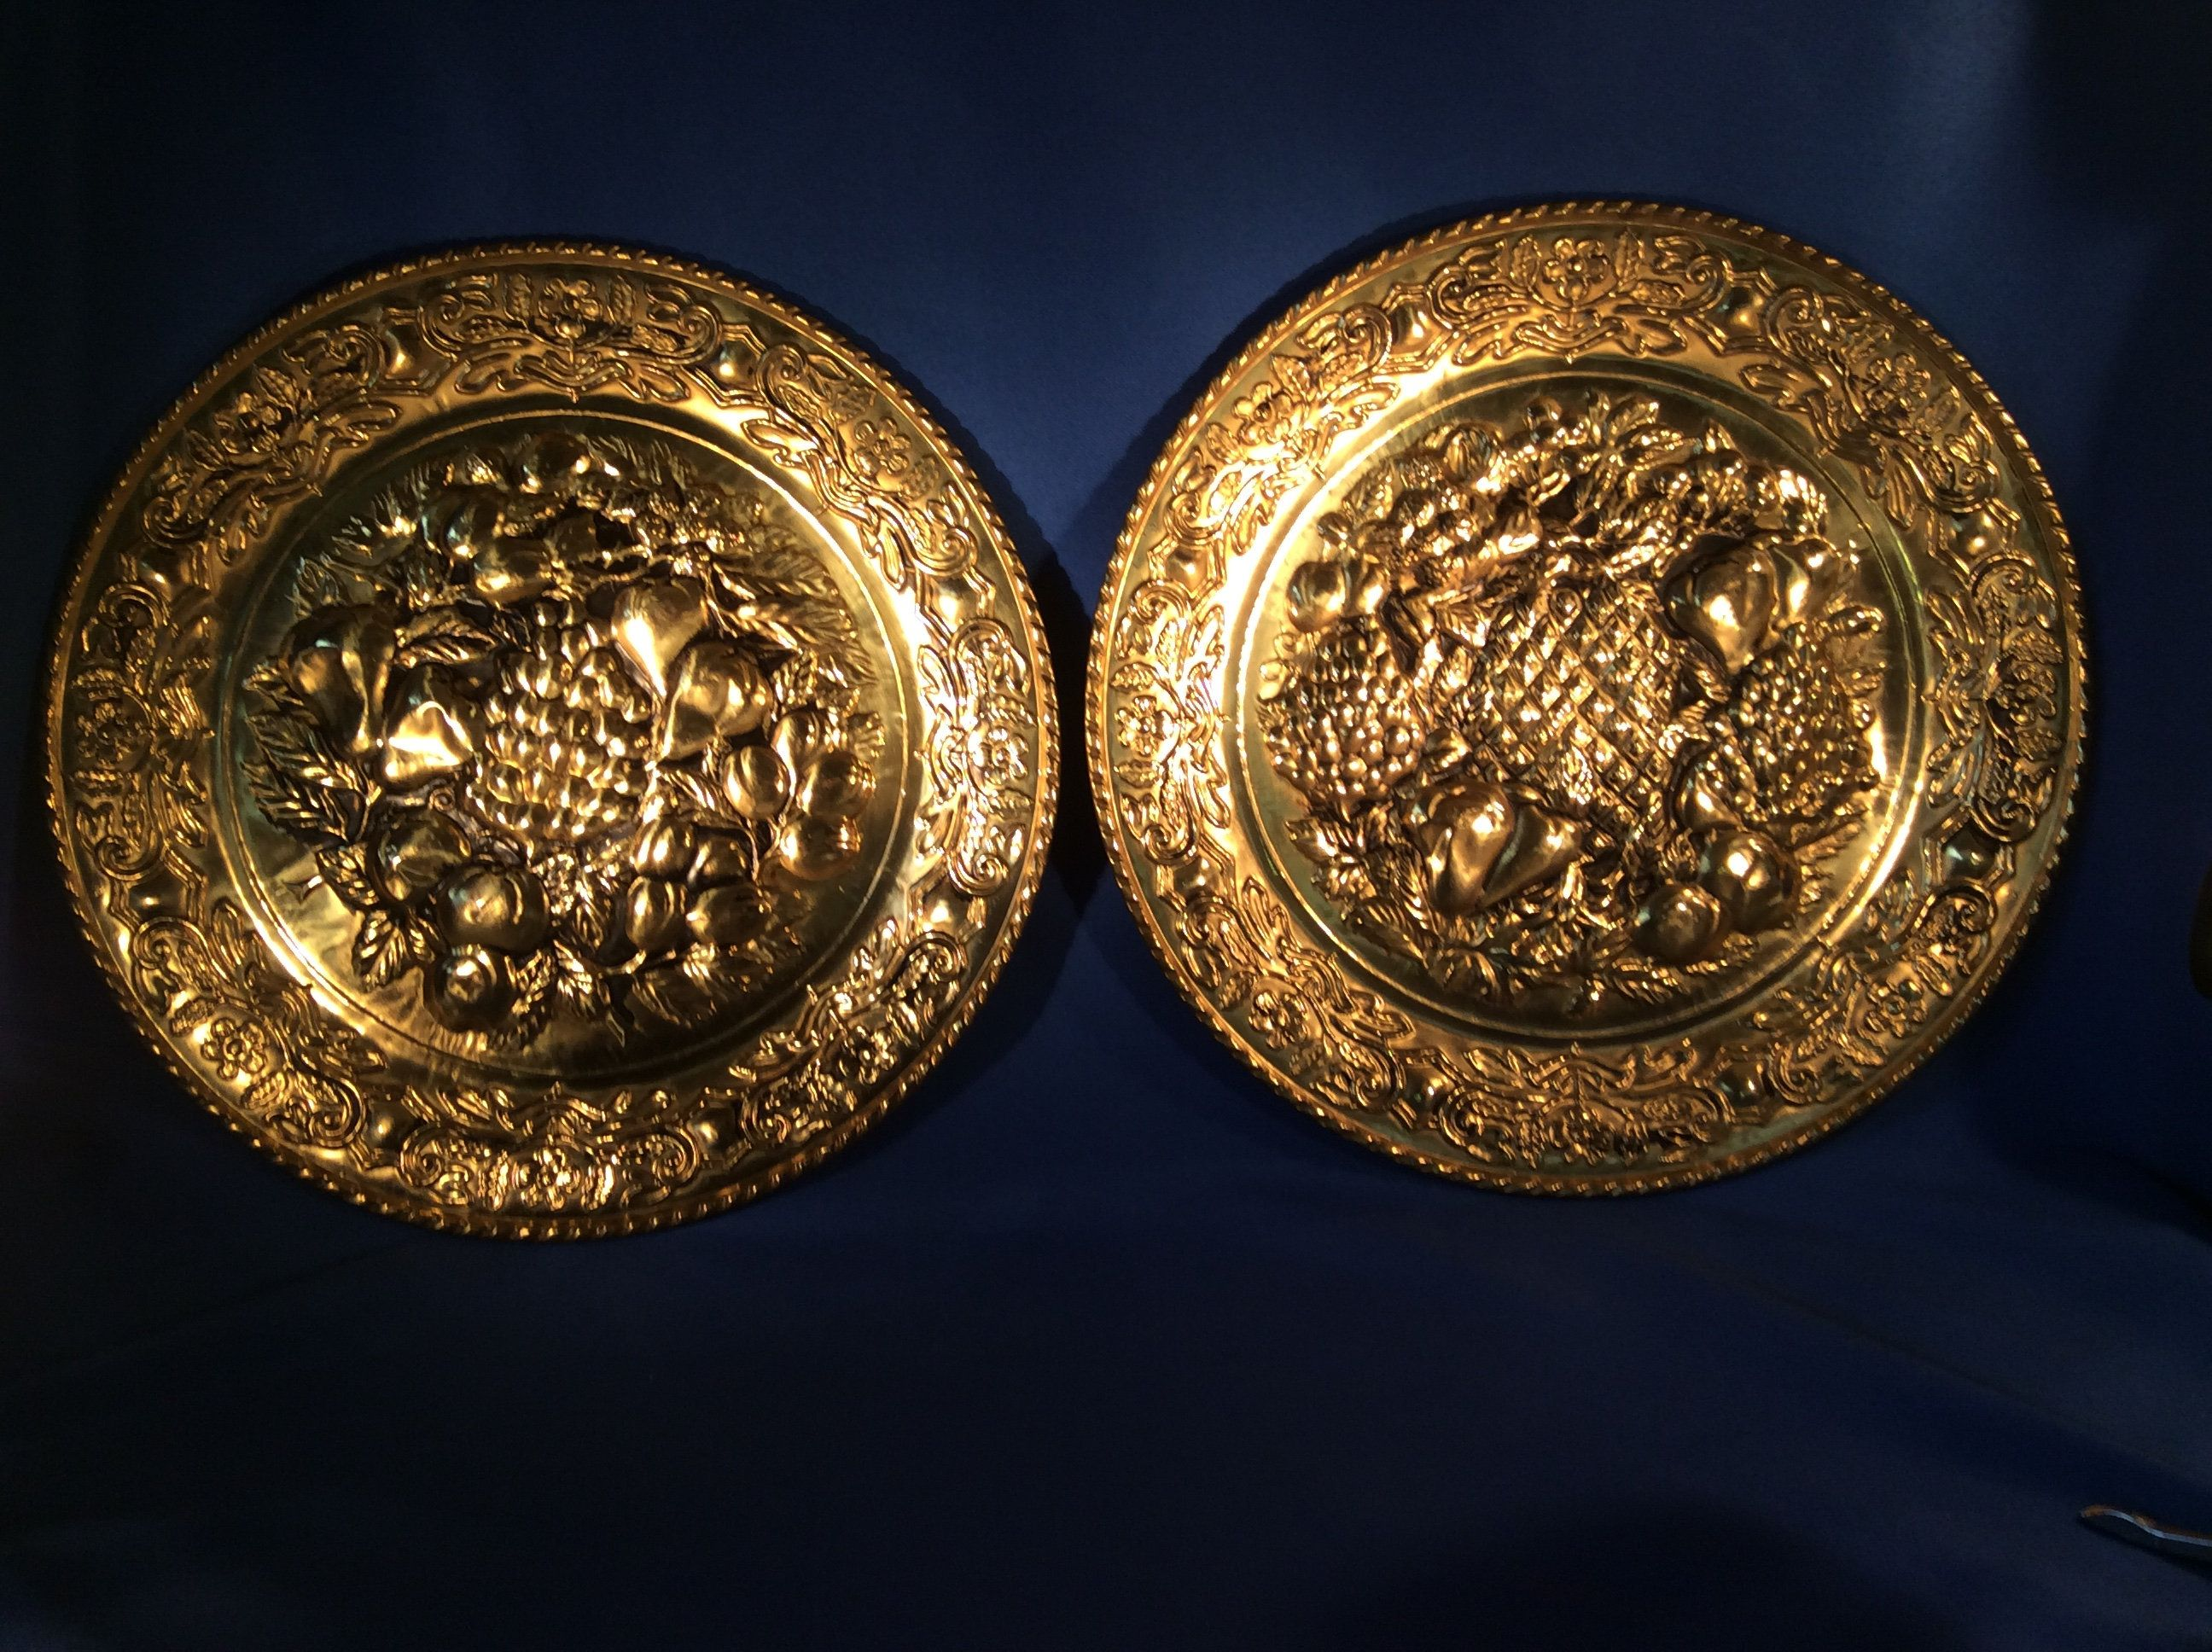 2 Vintage Decorative Hanging Hammered Brass Wall Plates Made In